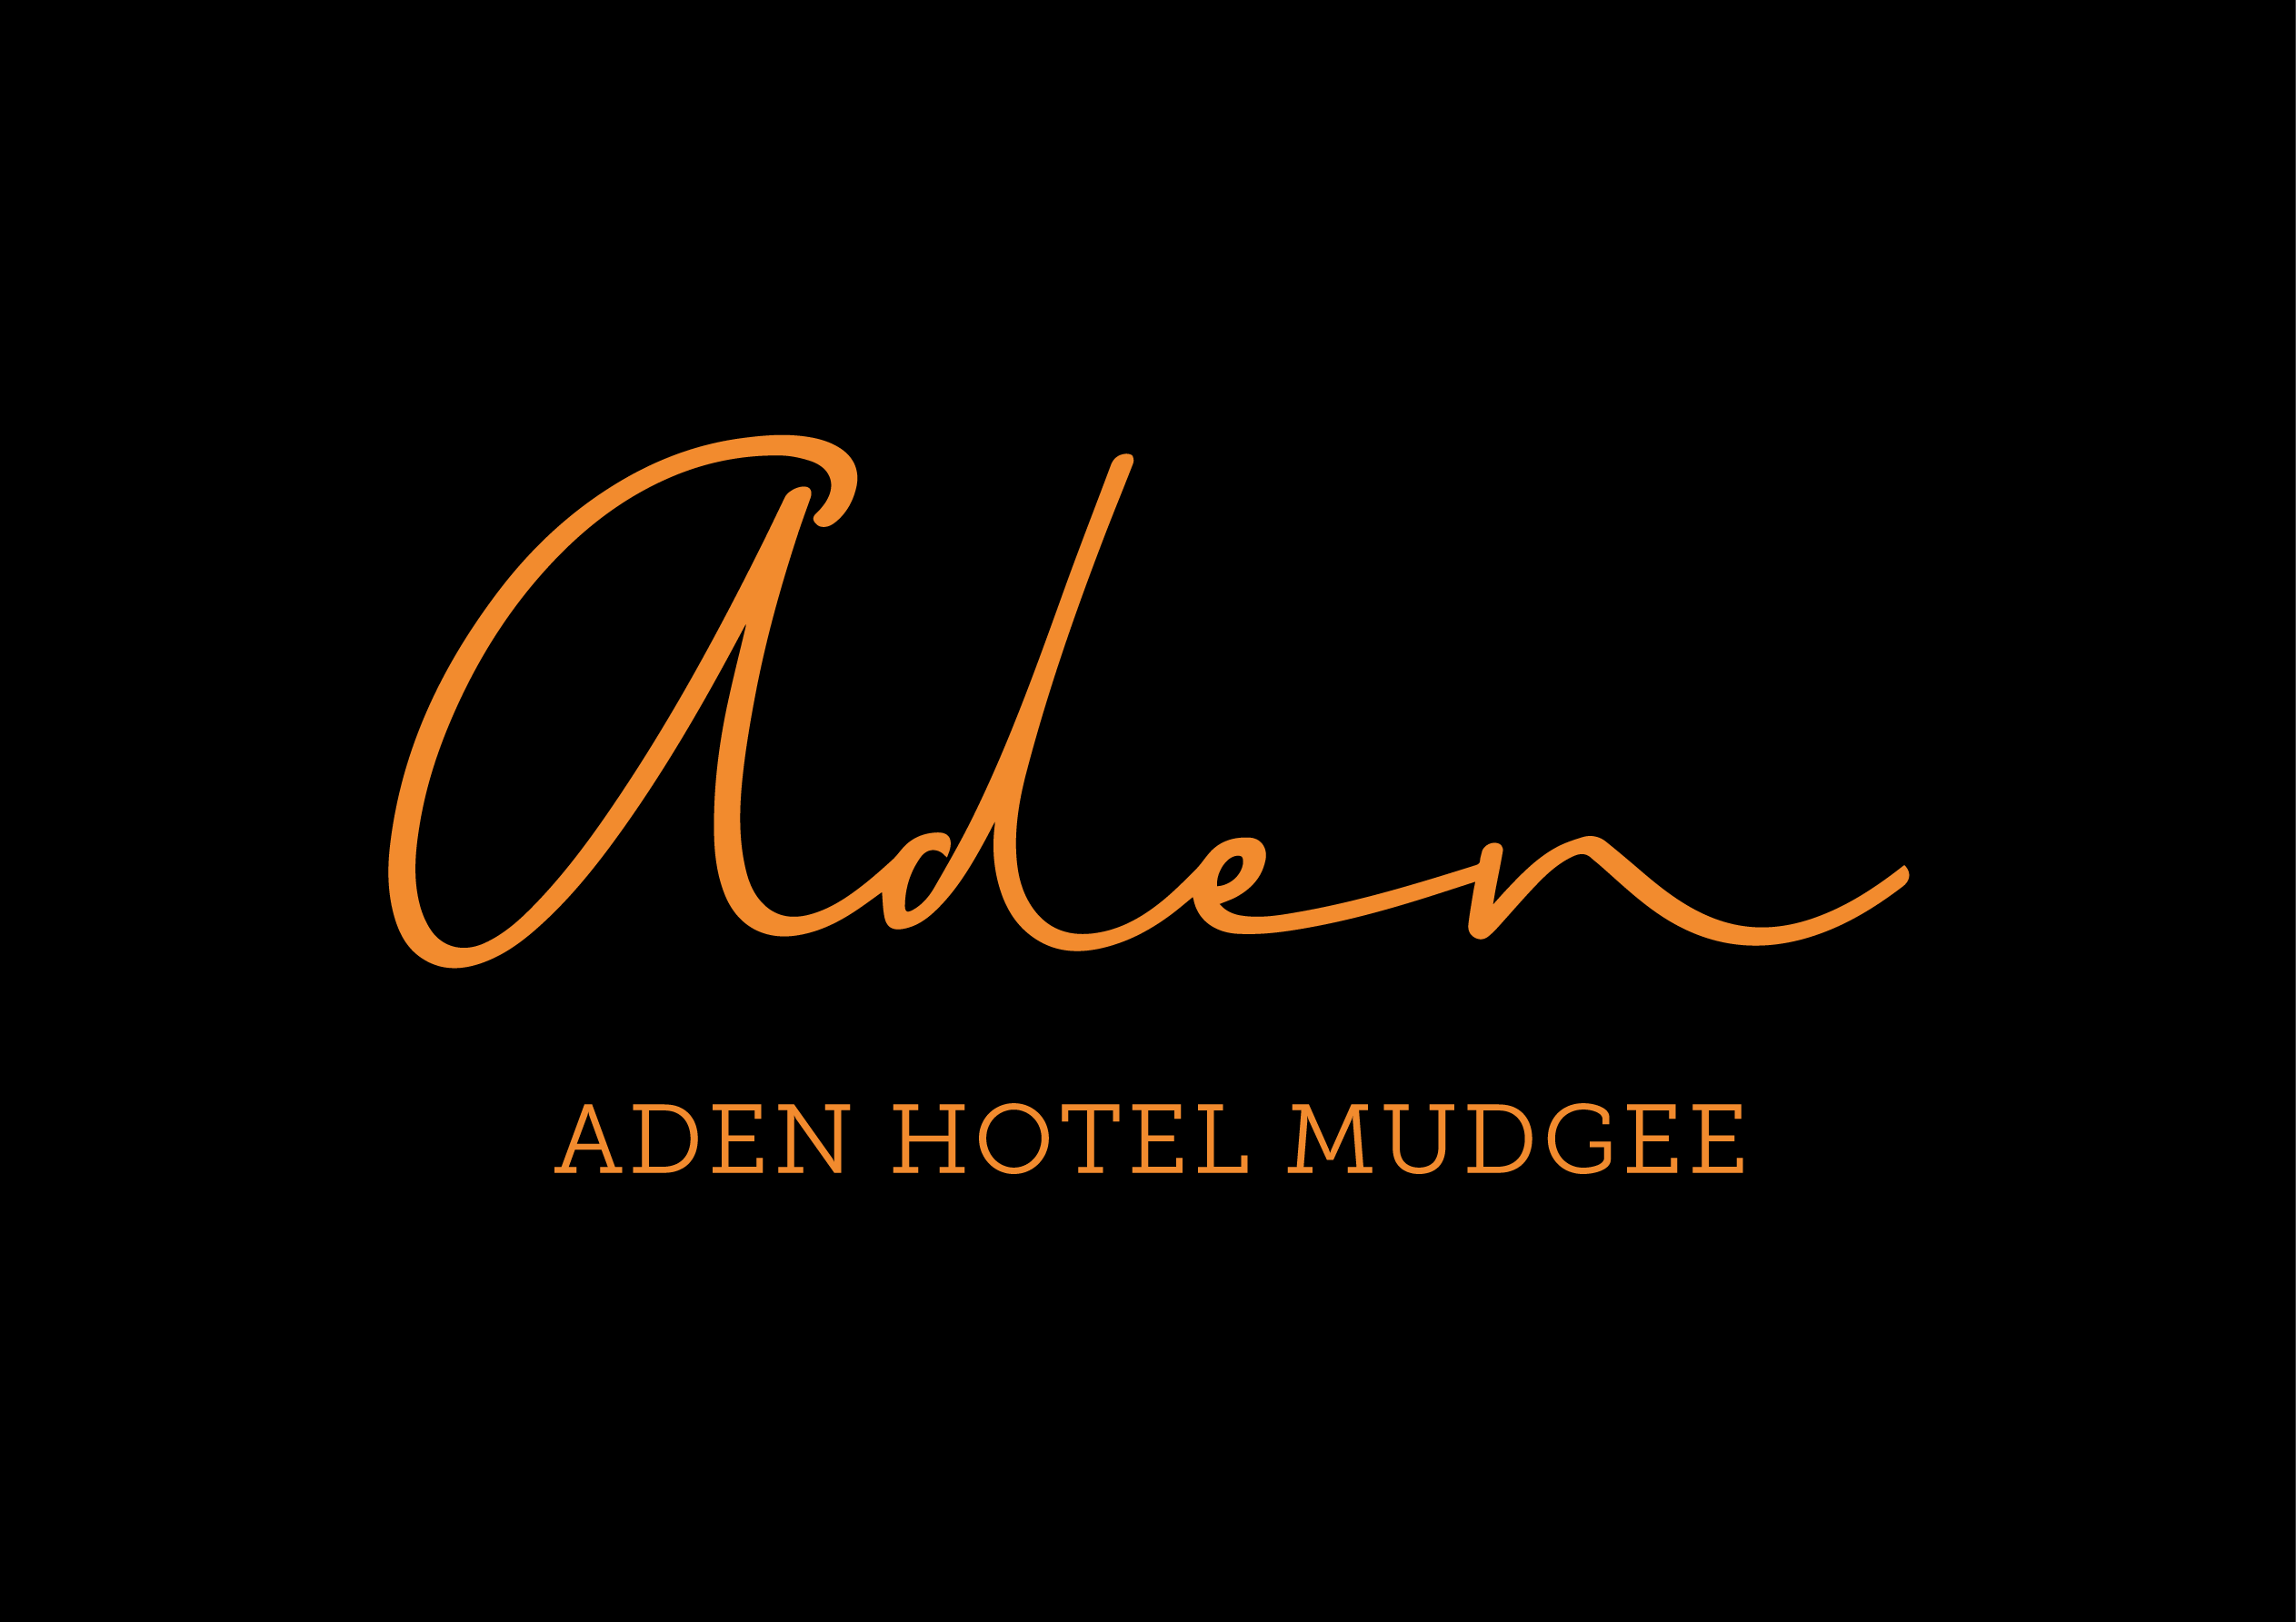 Comfort Inn Aden Hotel Mudgee - Accommodation in Bendigo